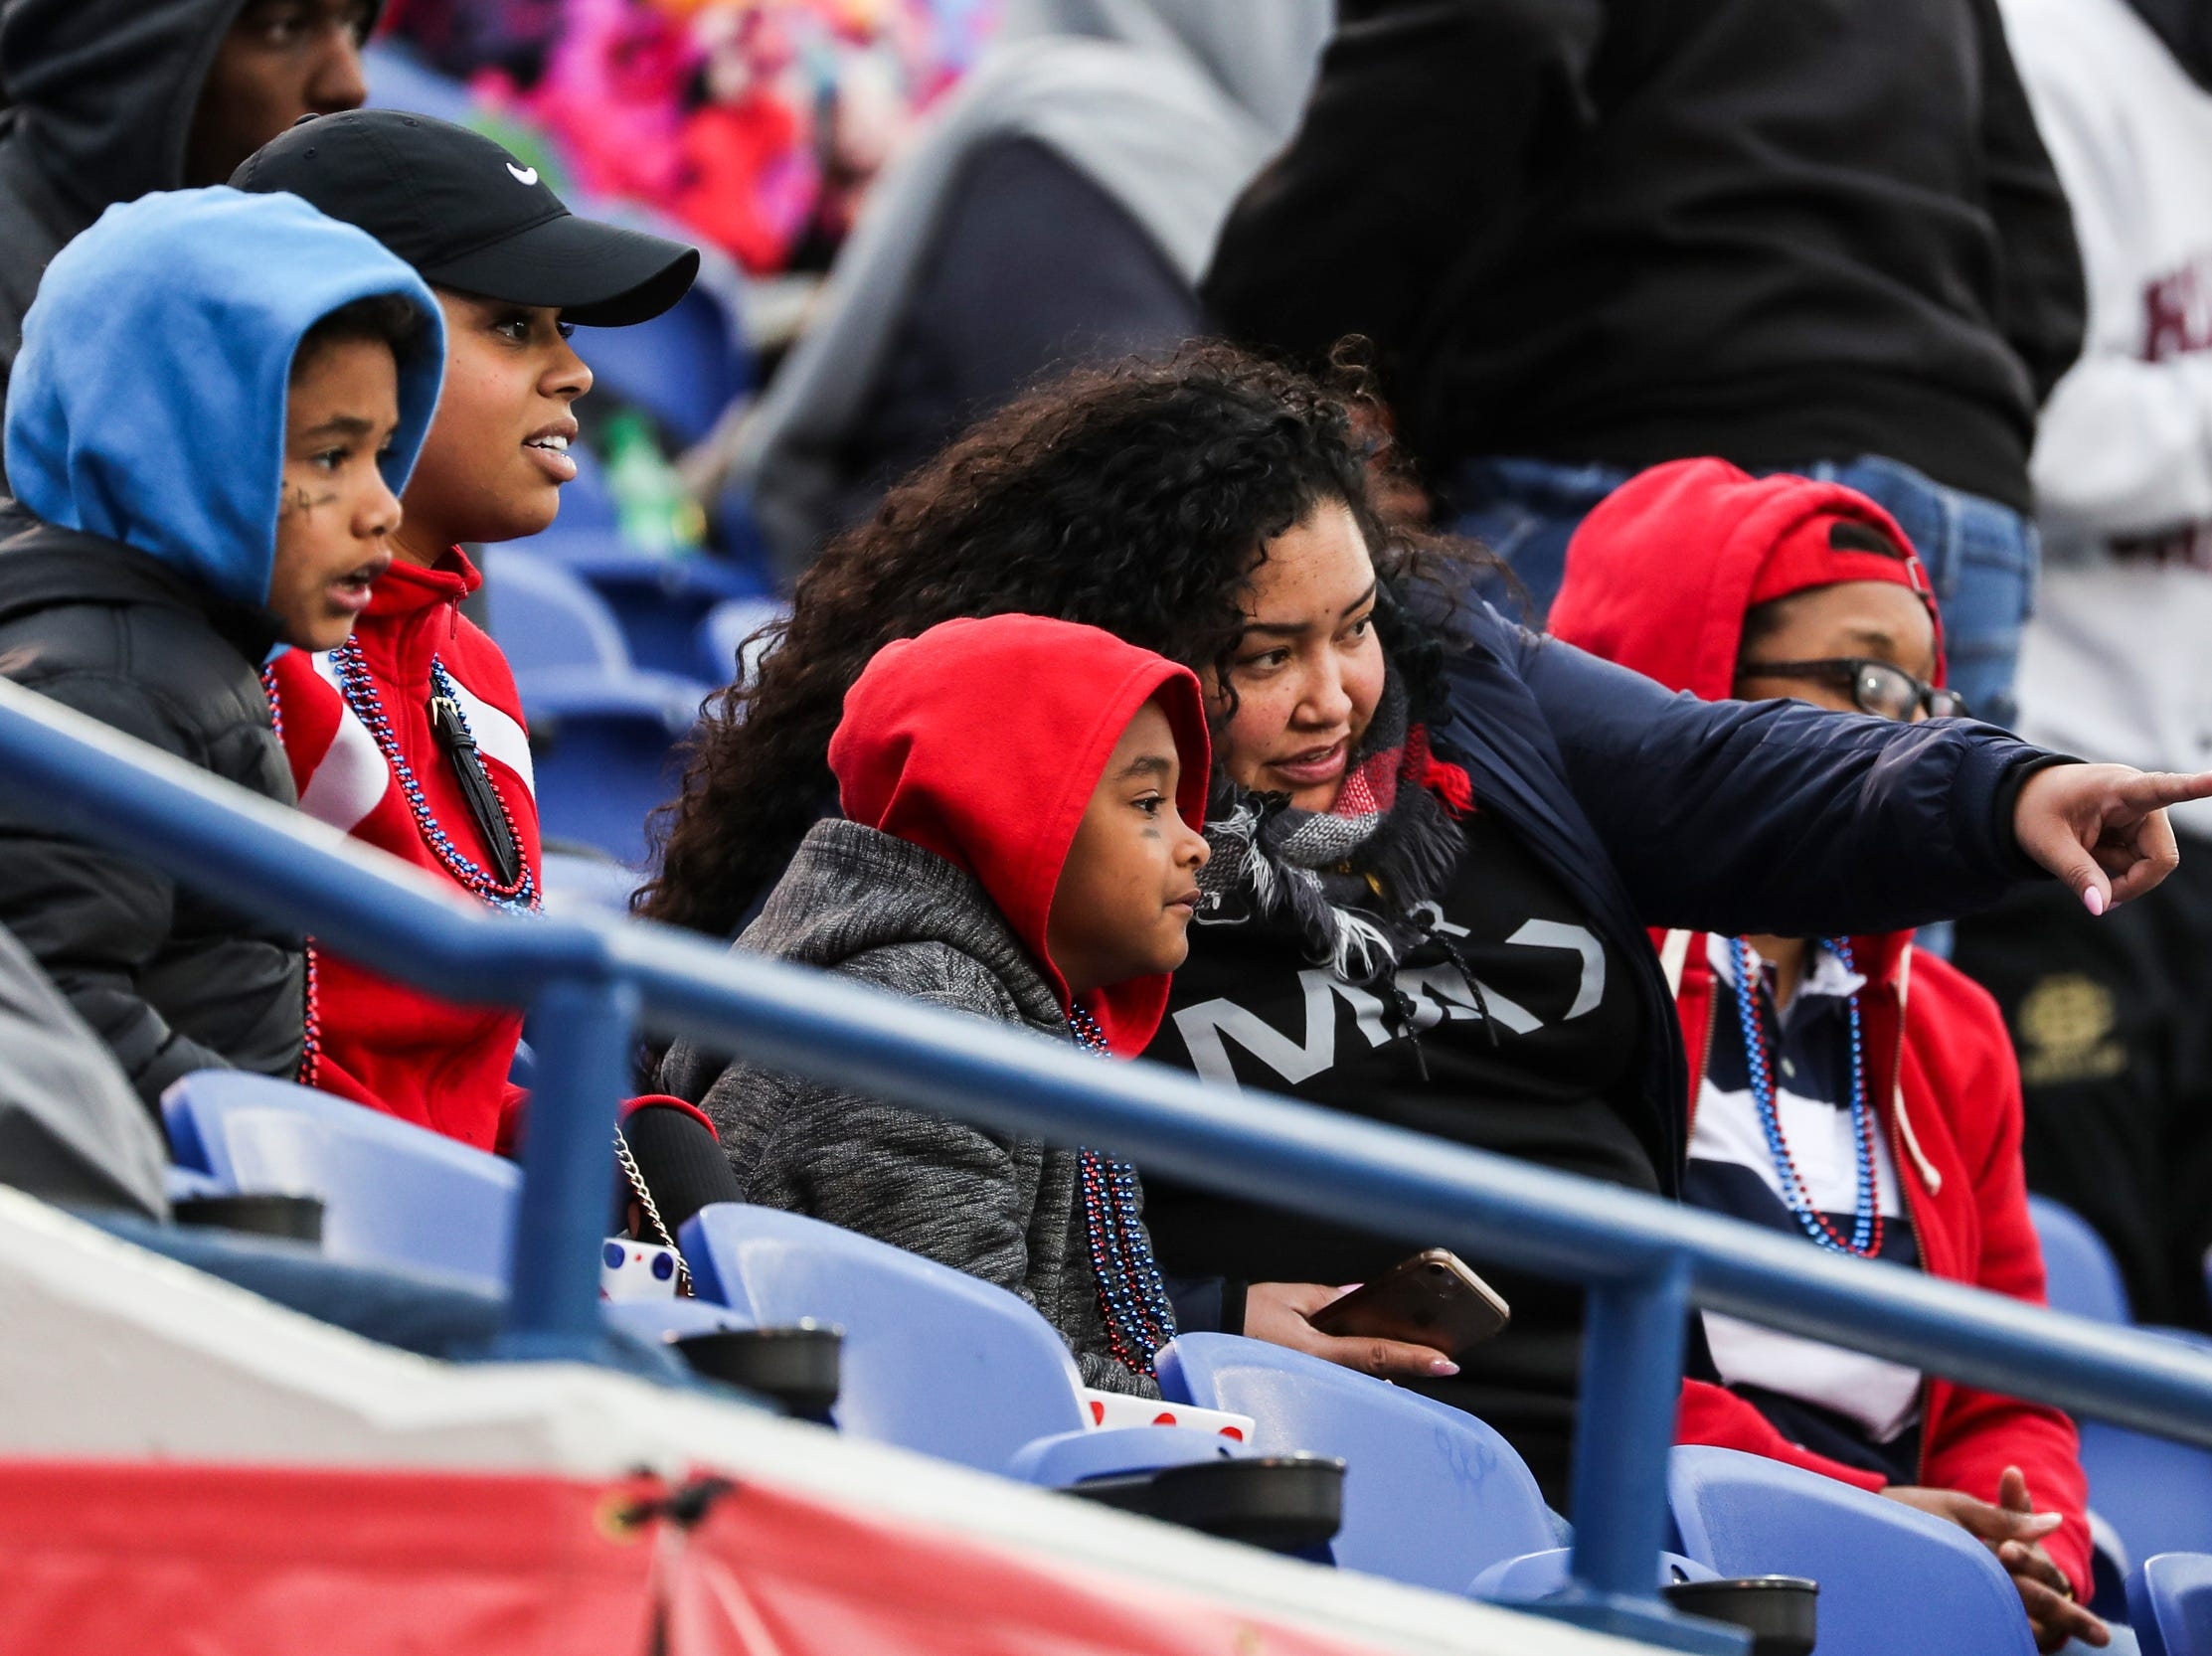 March 02, 2019 - Fans are seen during Saturday's game against the San Diego Fleet.